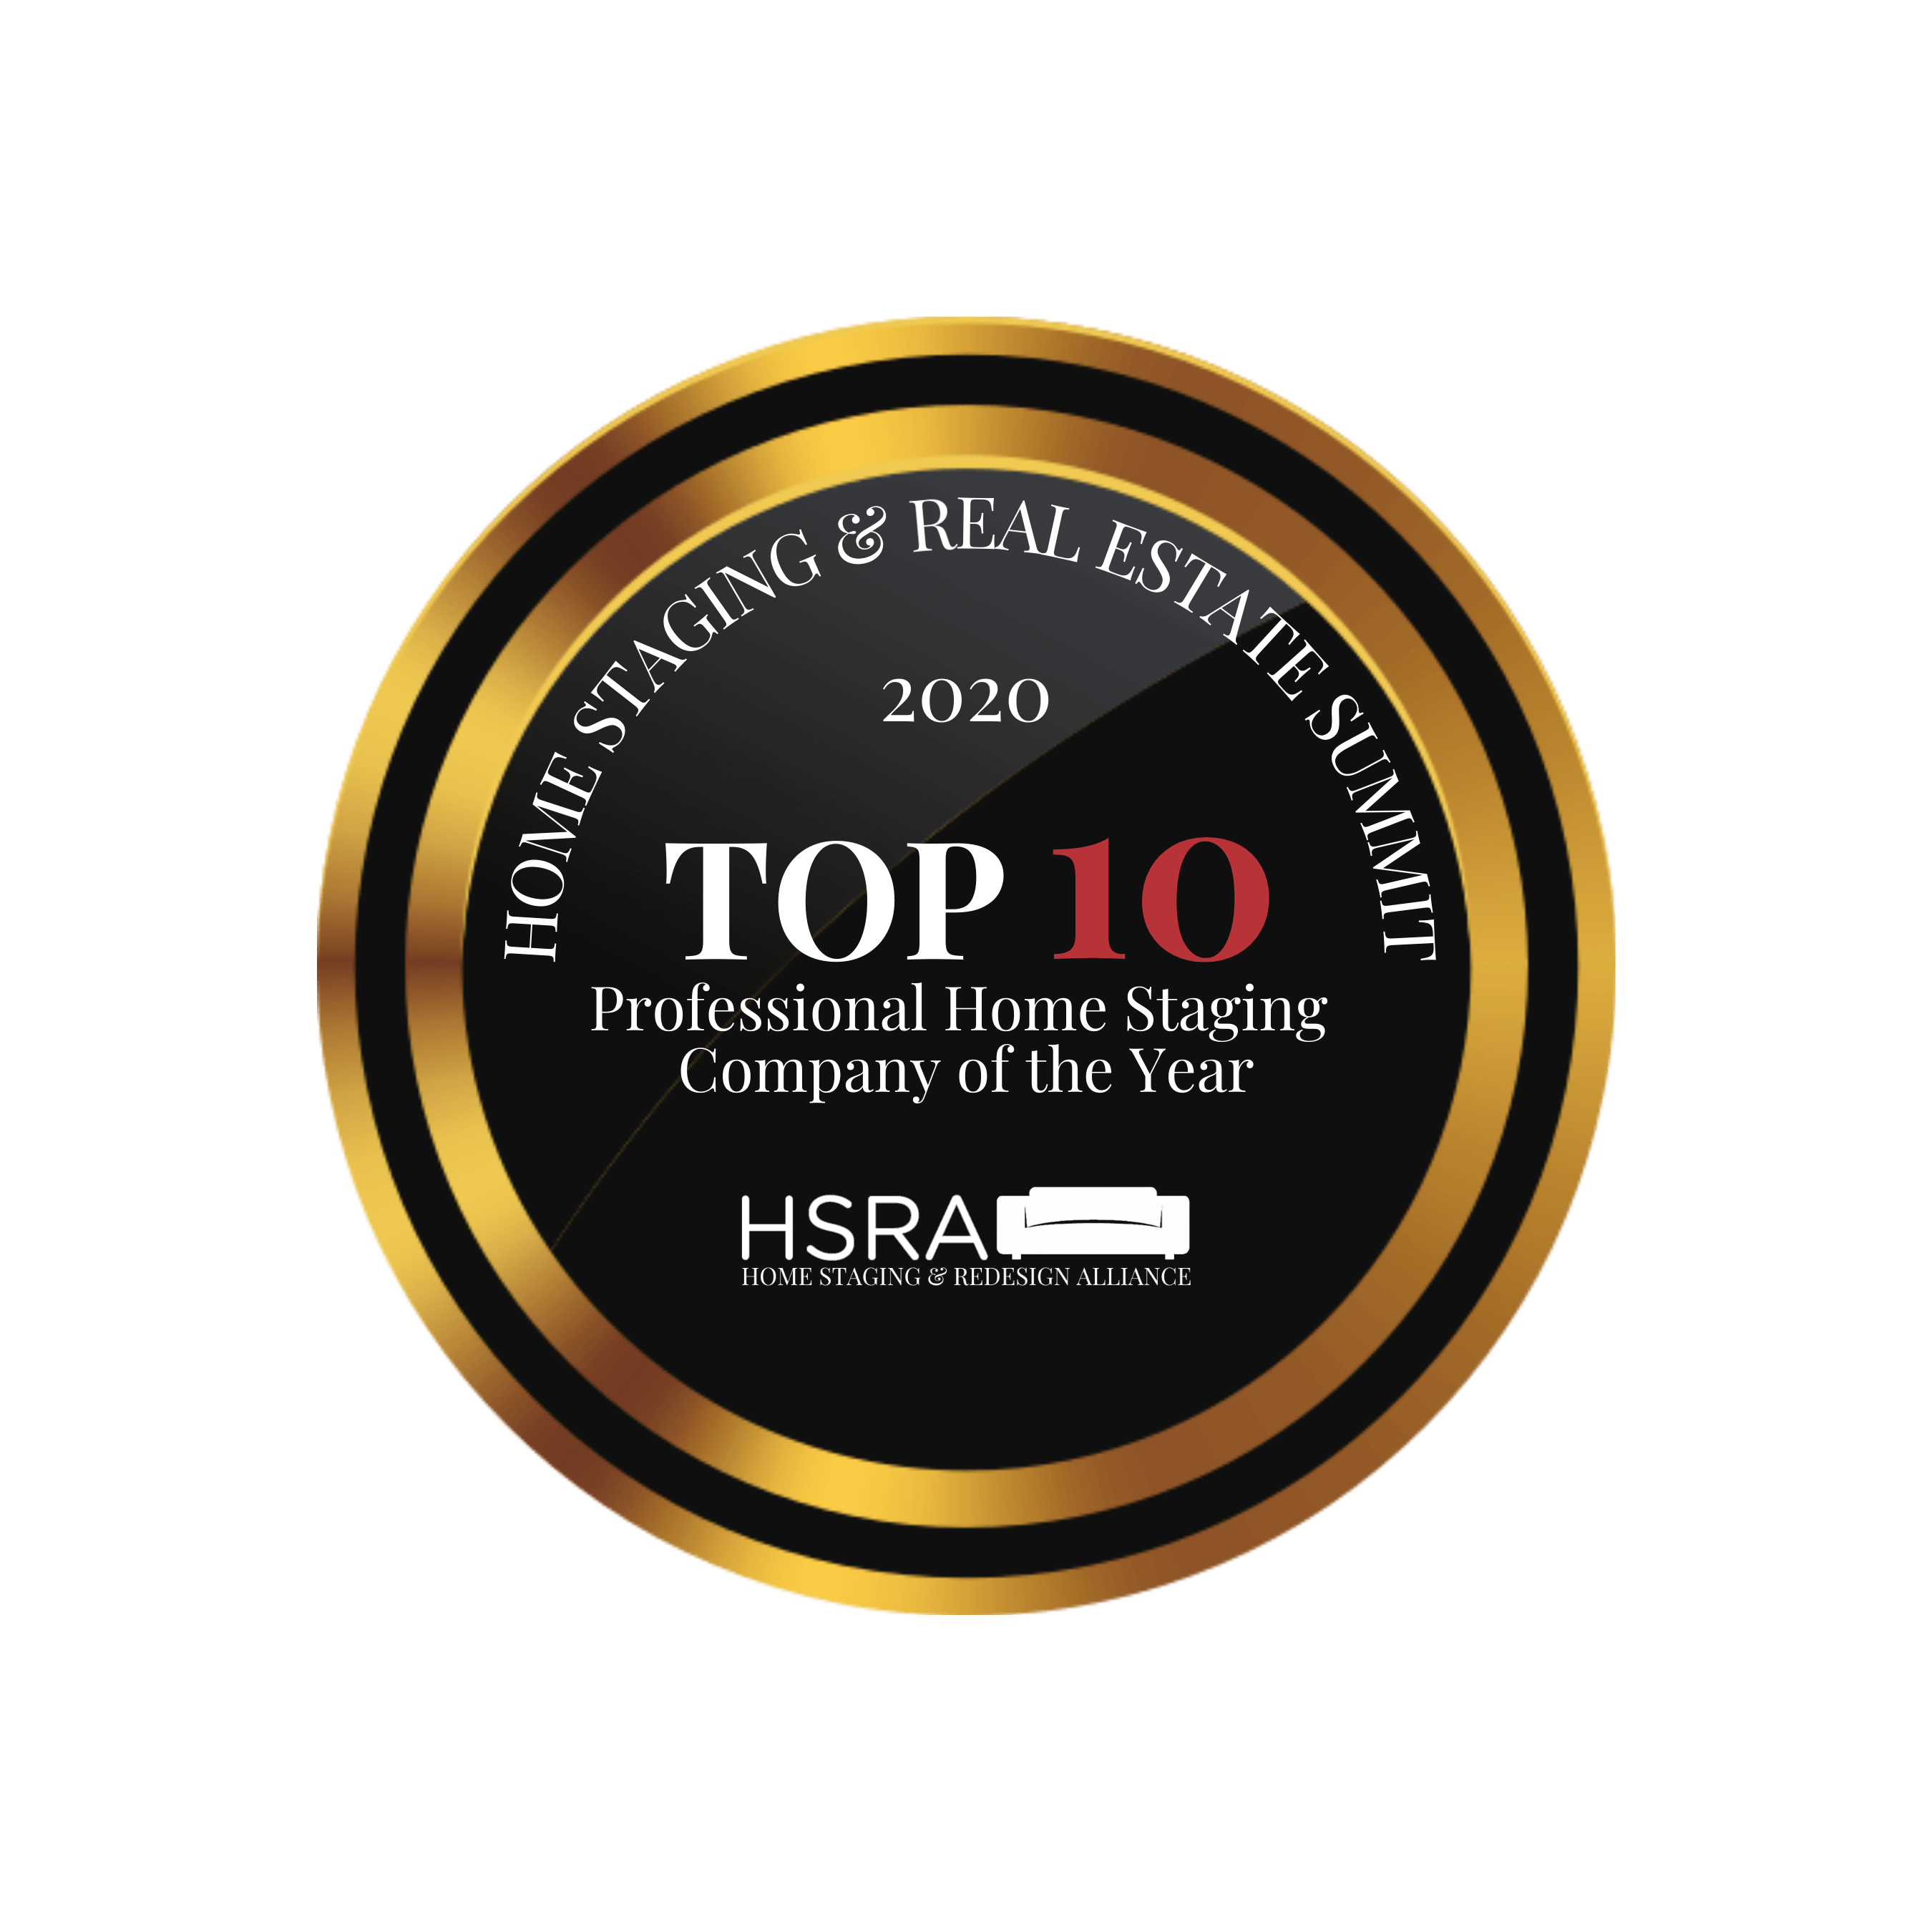 2020 HSRA Top 10 Professional Home Staging Company of the Year